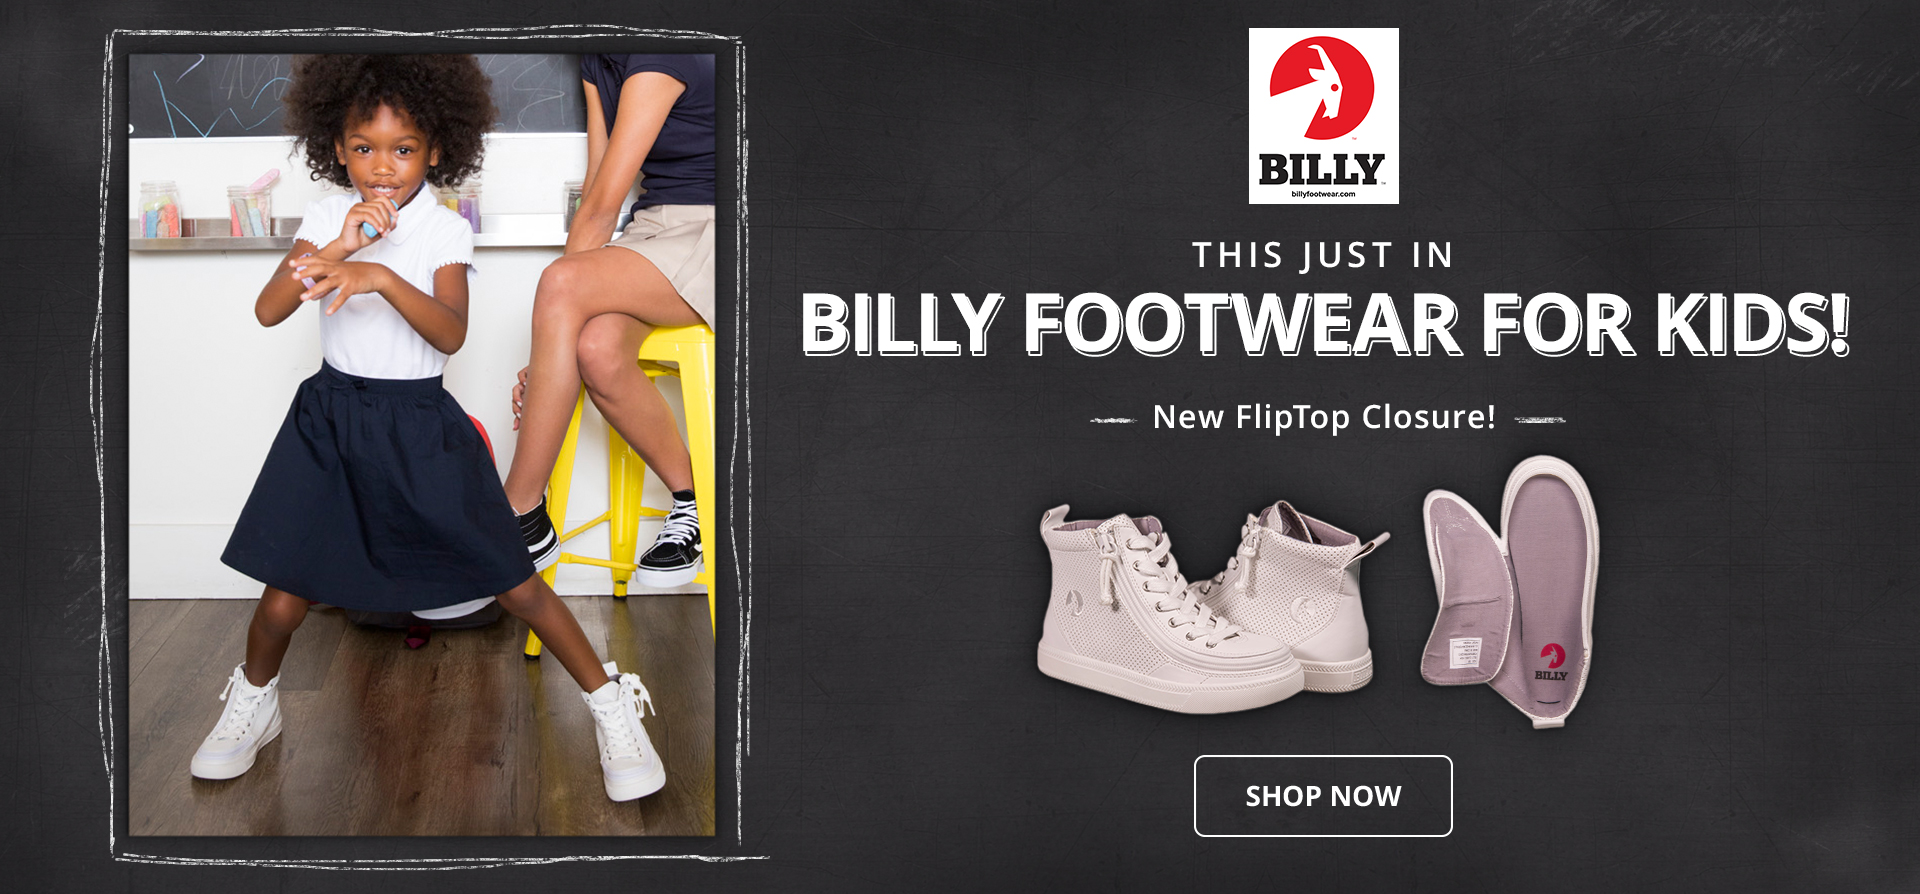 Shop Billy Footwear